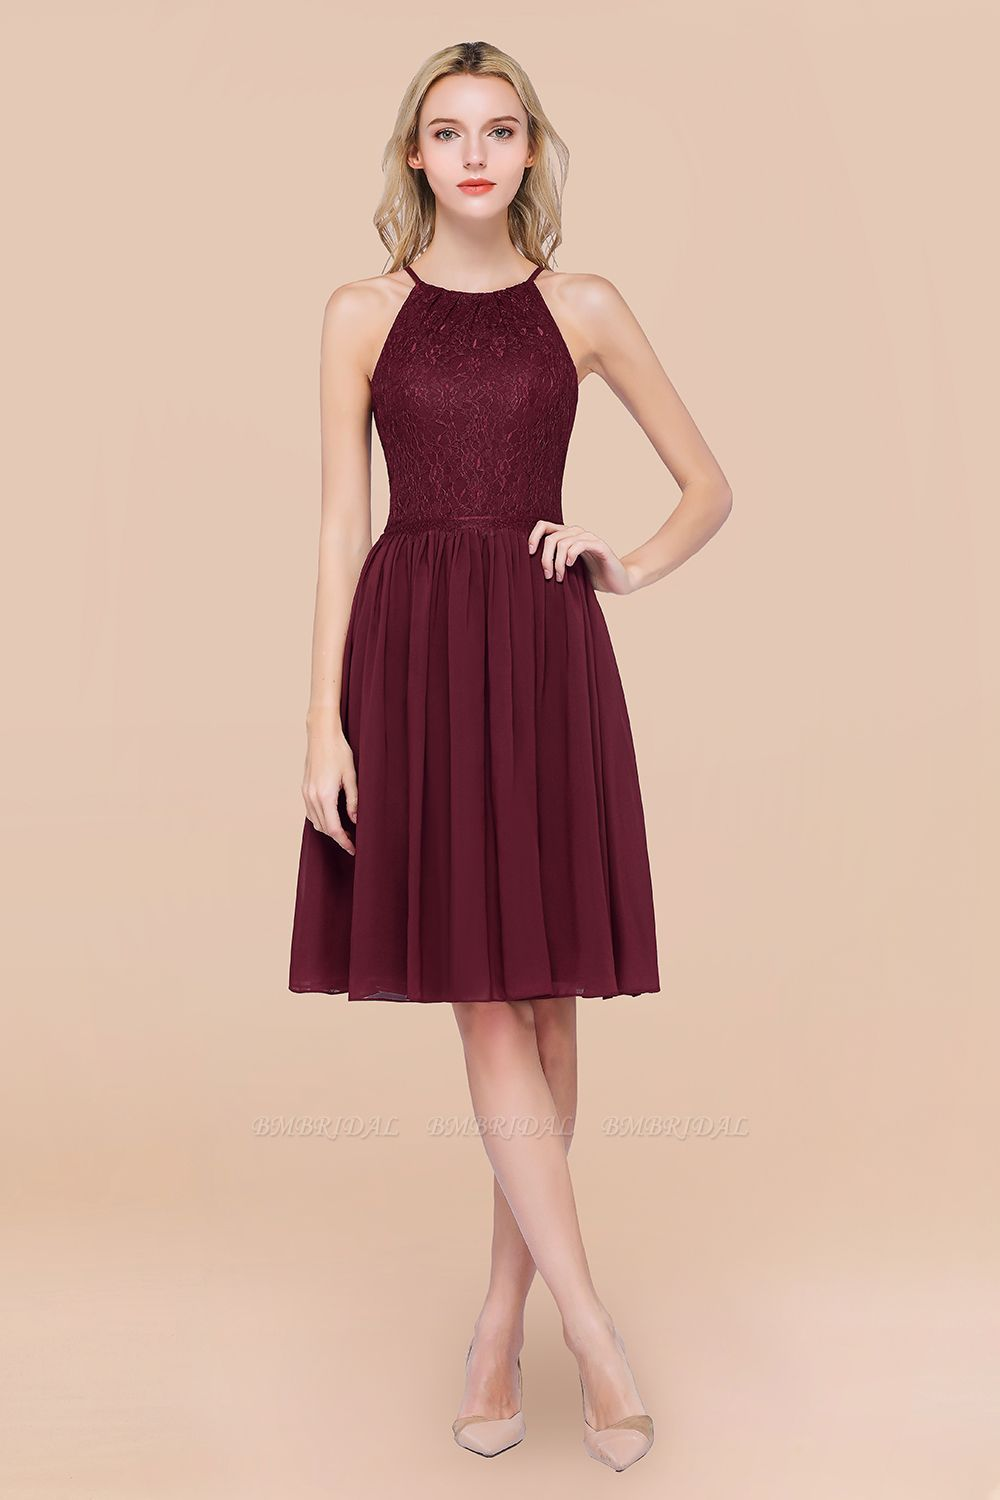 Lovely Burgundy Lace Short Bridesmaid Dress With Spaghetti-Straps